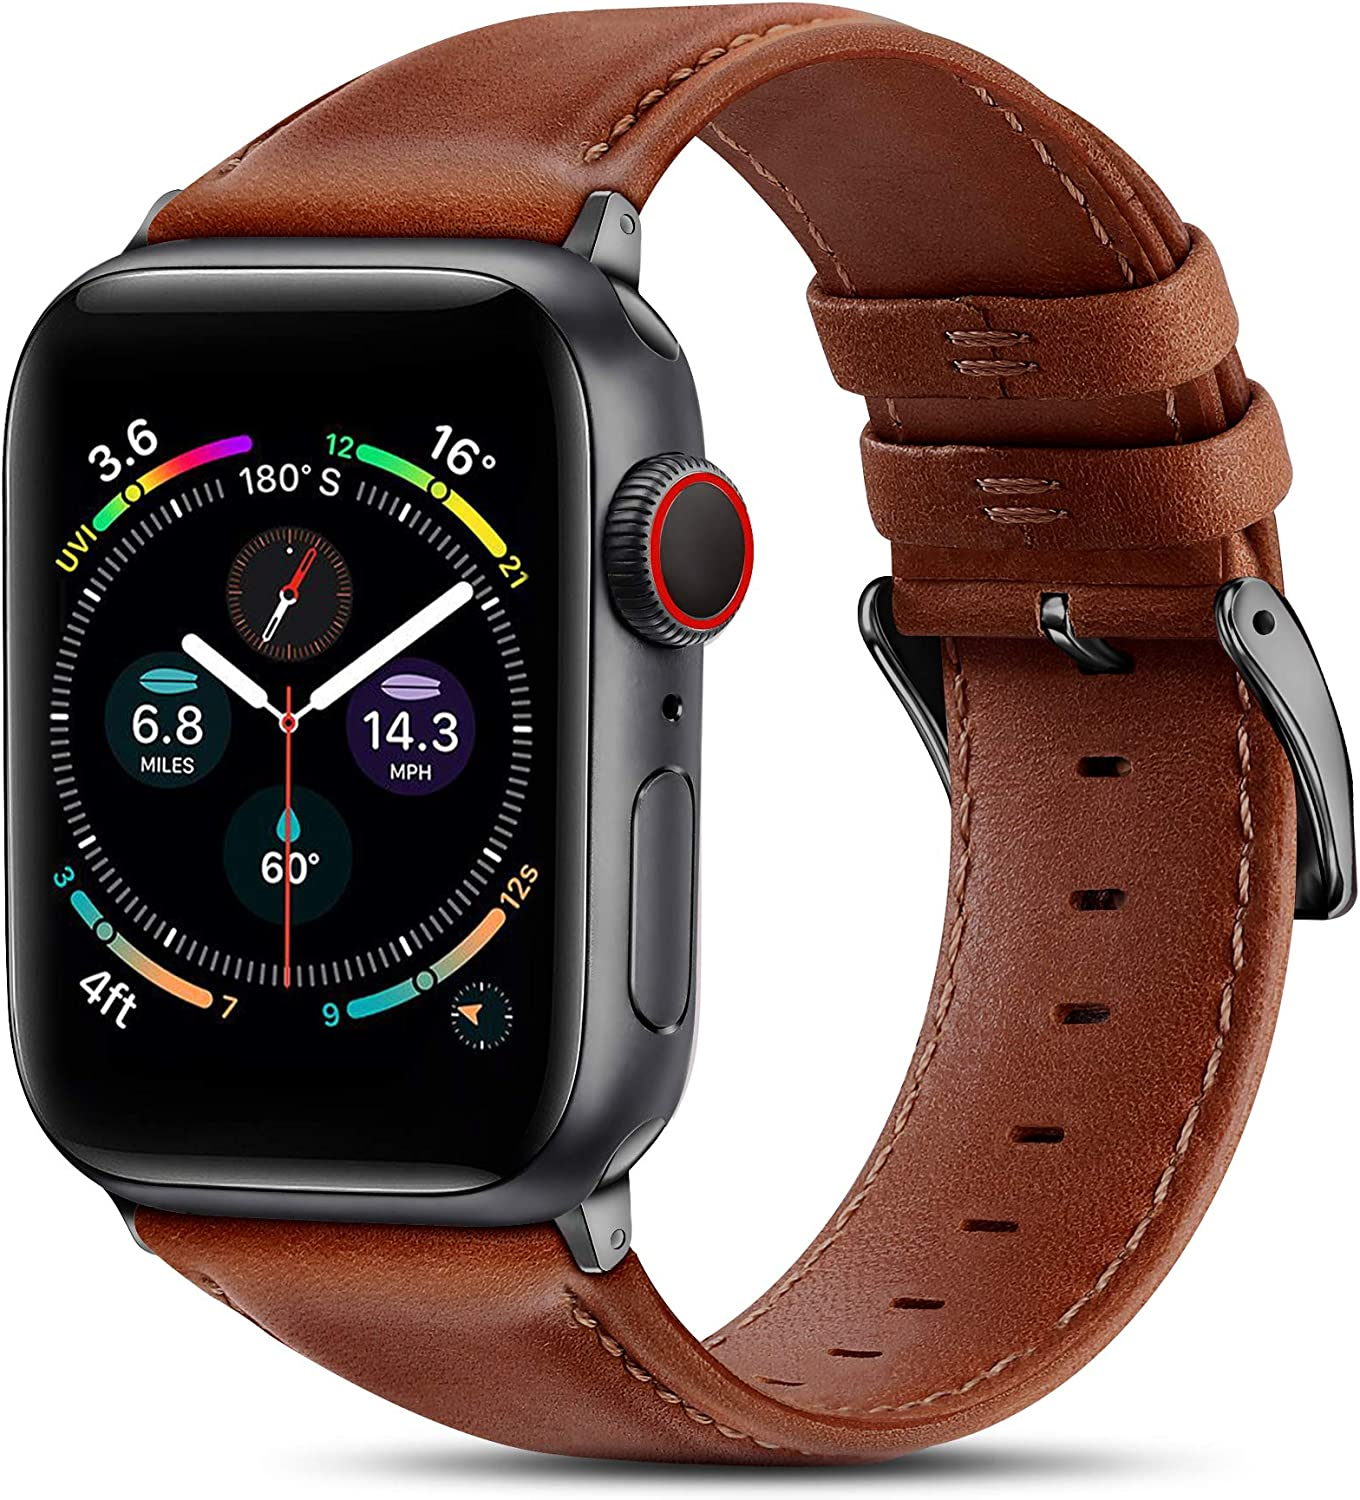 BRG Leather Bands Compatible with Apple Watch Band 44mm 42mm 40mm 38mm, Men Women Replacement Genuine Leather Strap for iWatch SE Series 6 5 4 3 2 1